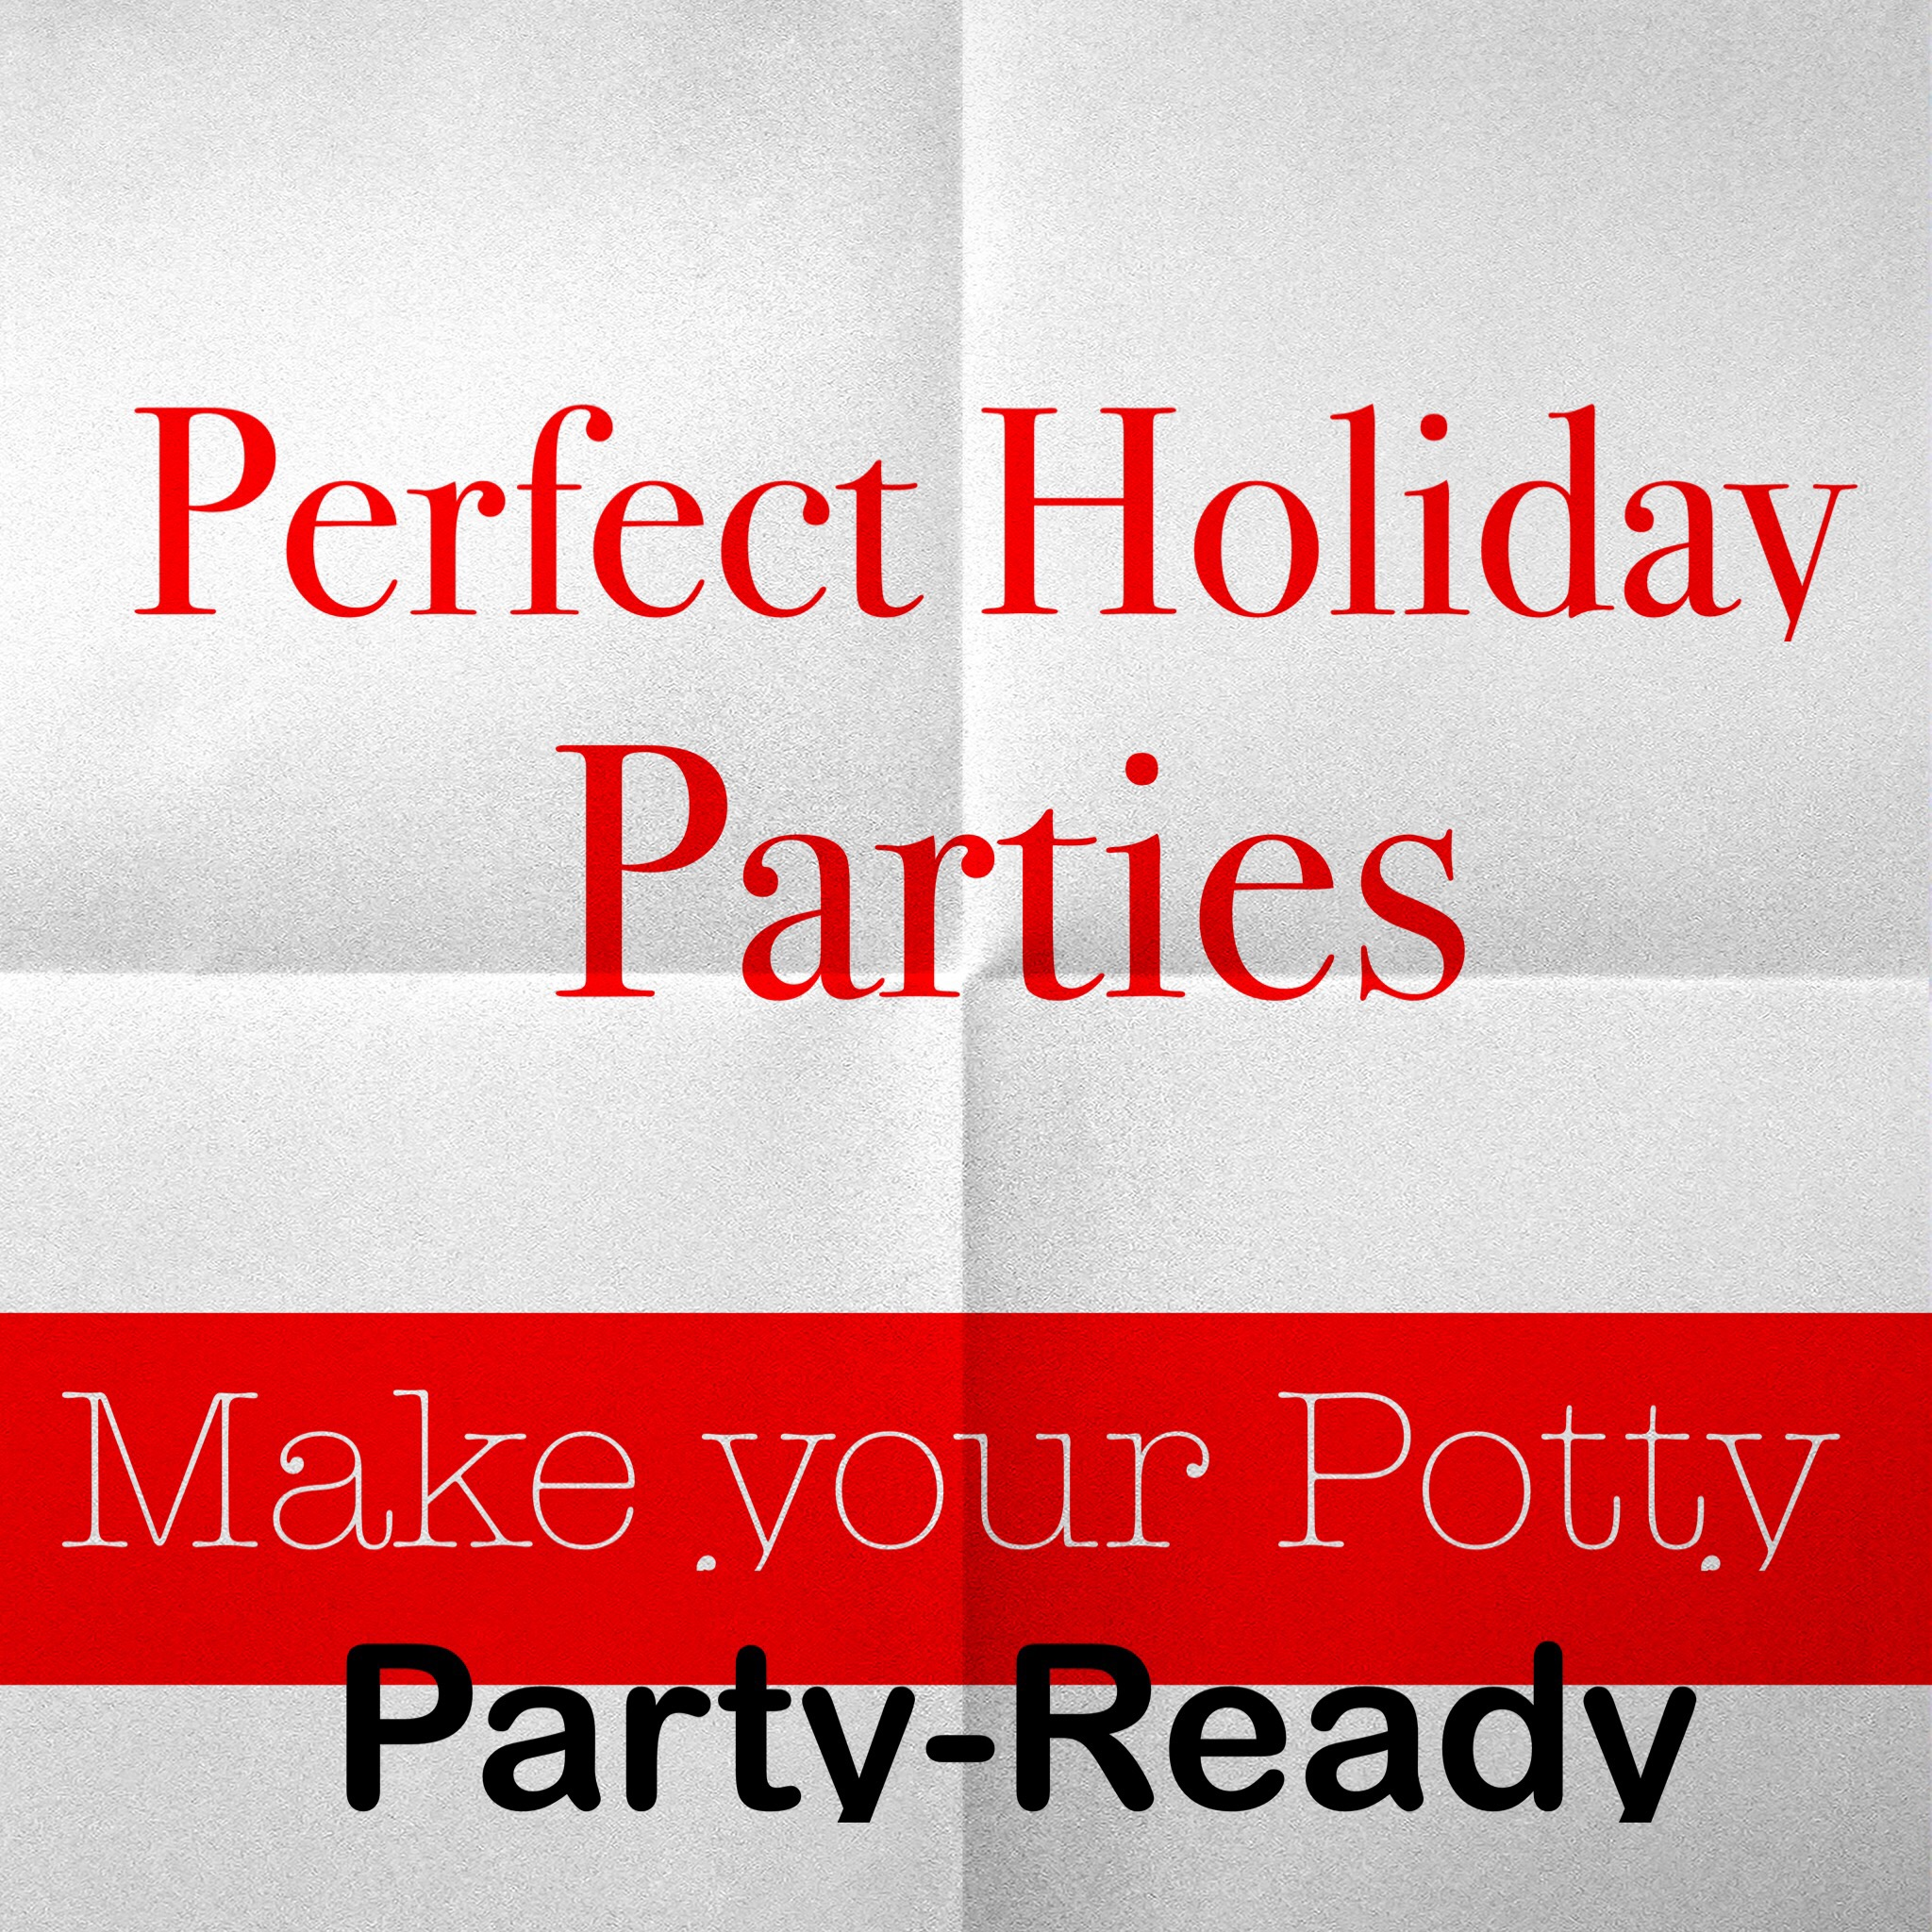 Perfect Holiday Parties: Make Your Potty Party Ready